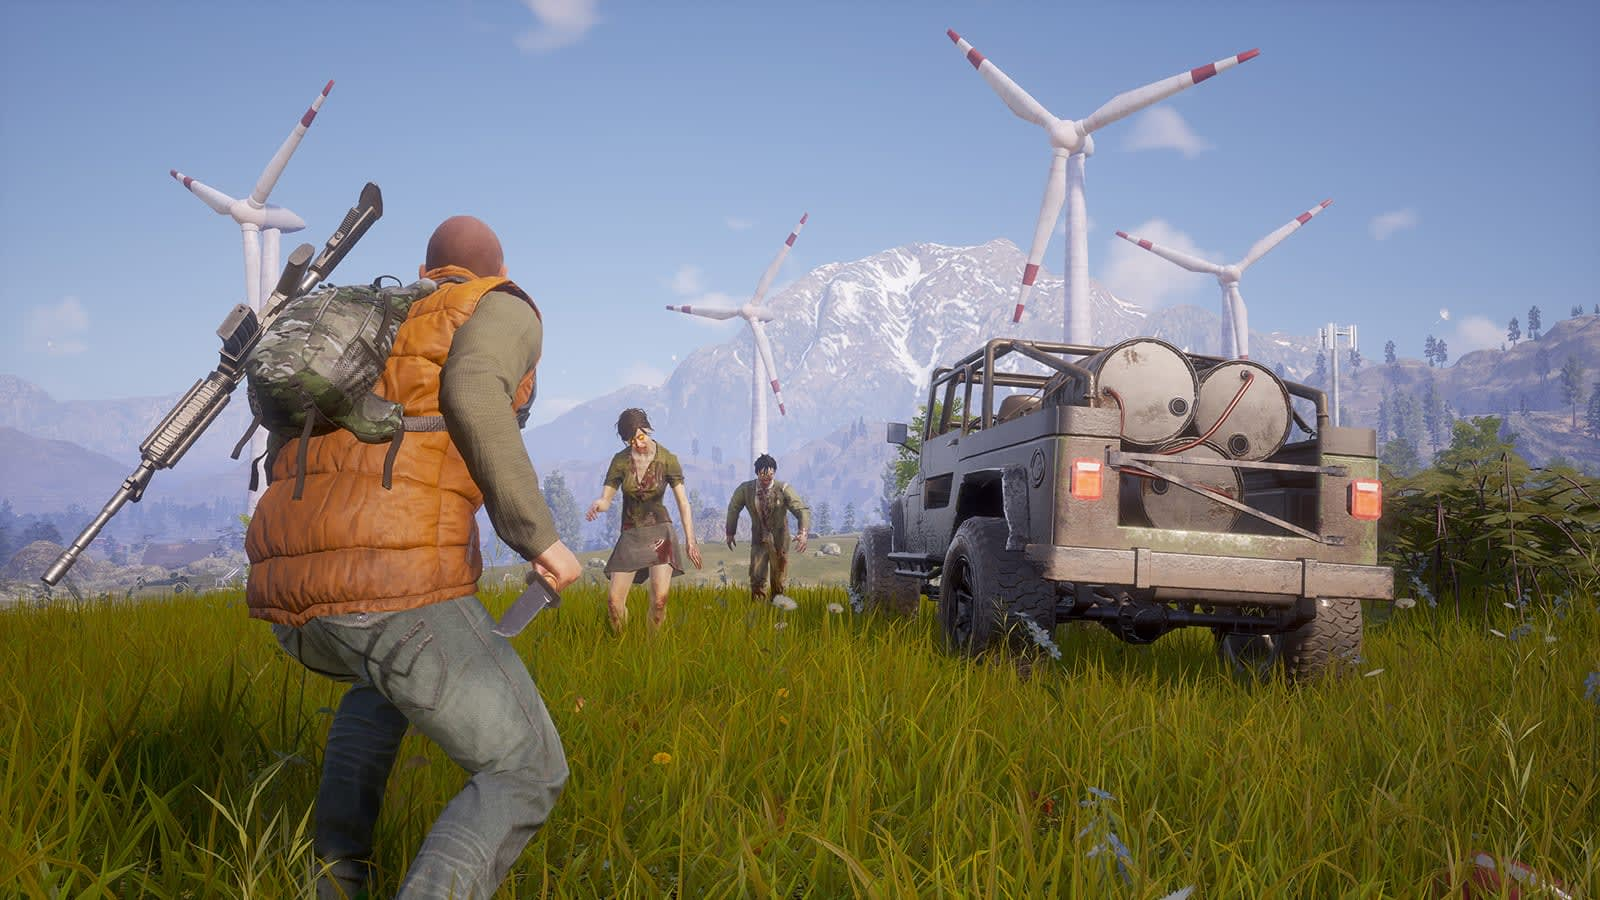 'State of Decay 2' brings zombie slaying to Steam in early 2020